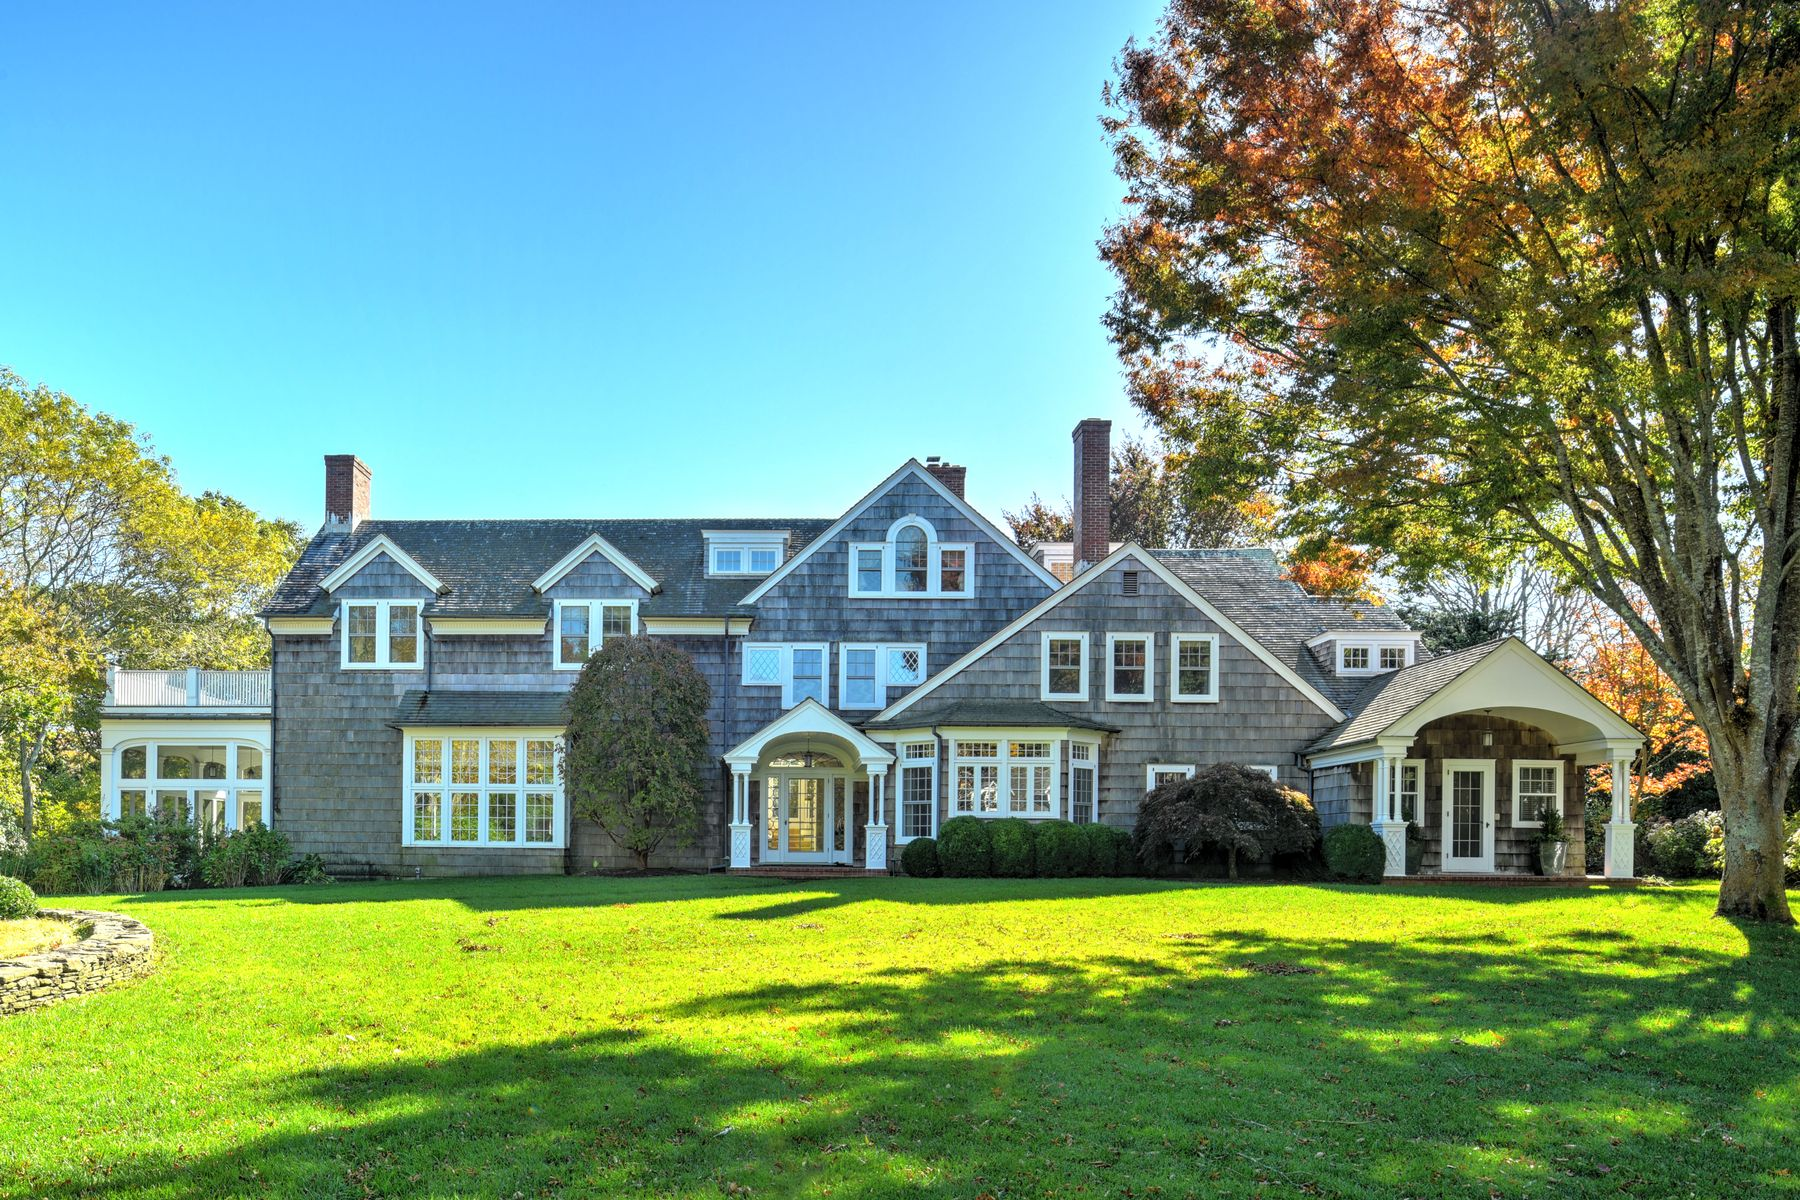 Single Family Homes for Active at Prestigious Georgica Estate Compound 253 Cove Hollow Road East Hampton, New York 11937 United States